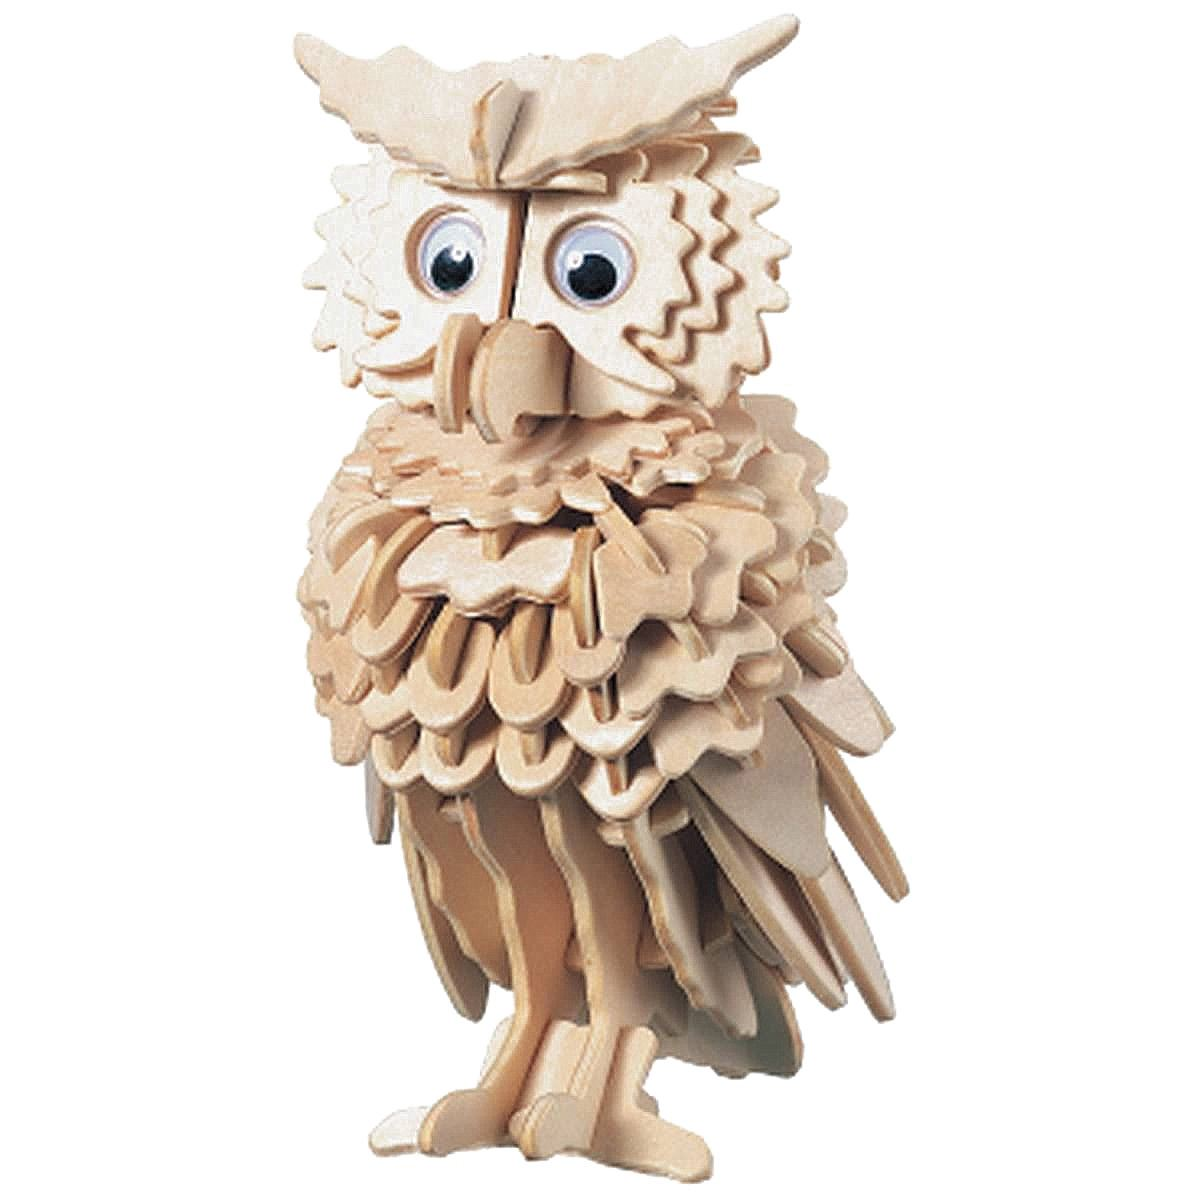 New 3D Wooden Owl Puzzle Jigsaw Woodcraft Kids Kit Toy Model DIY Construction puzzle